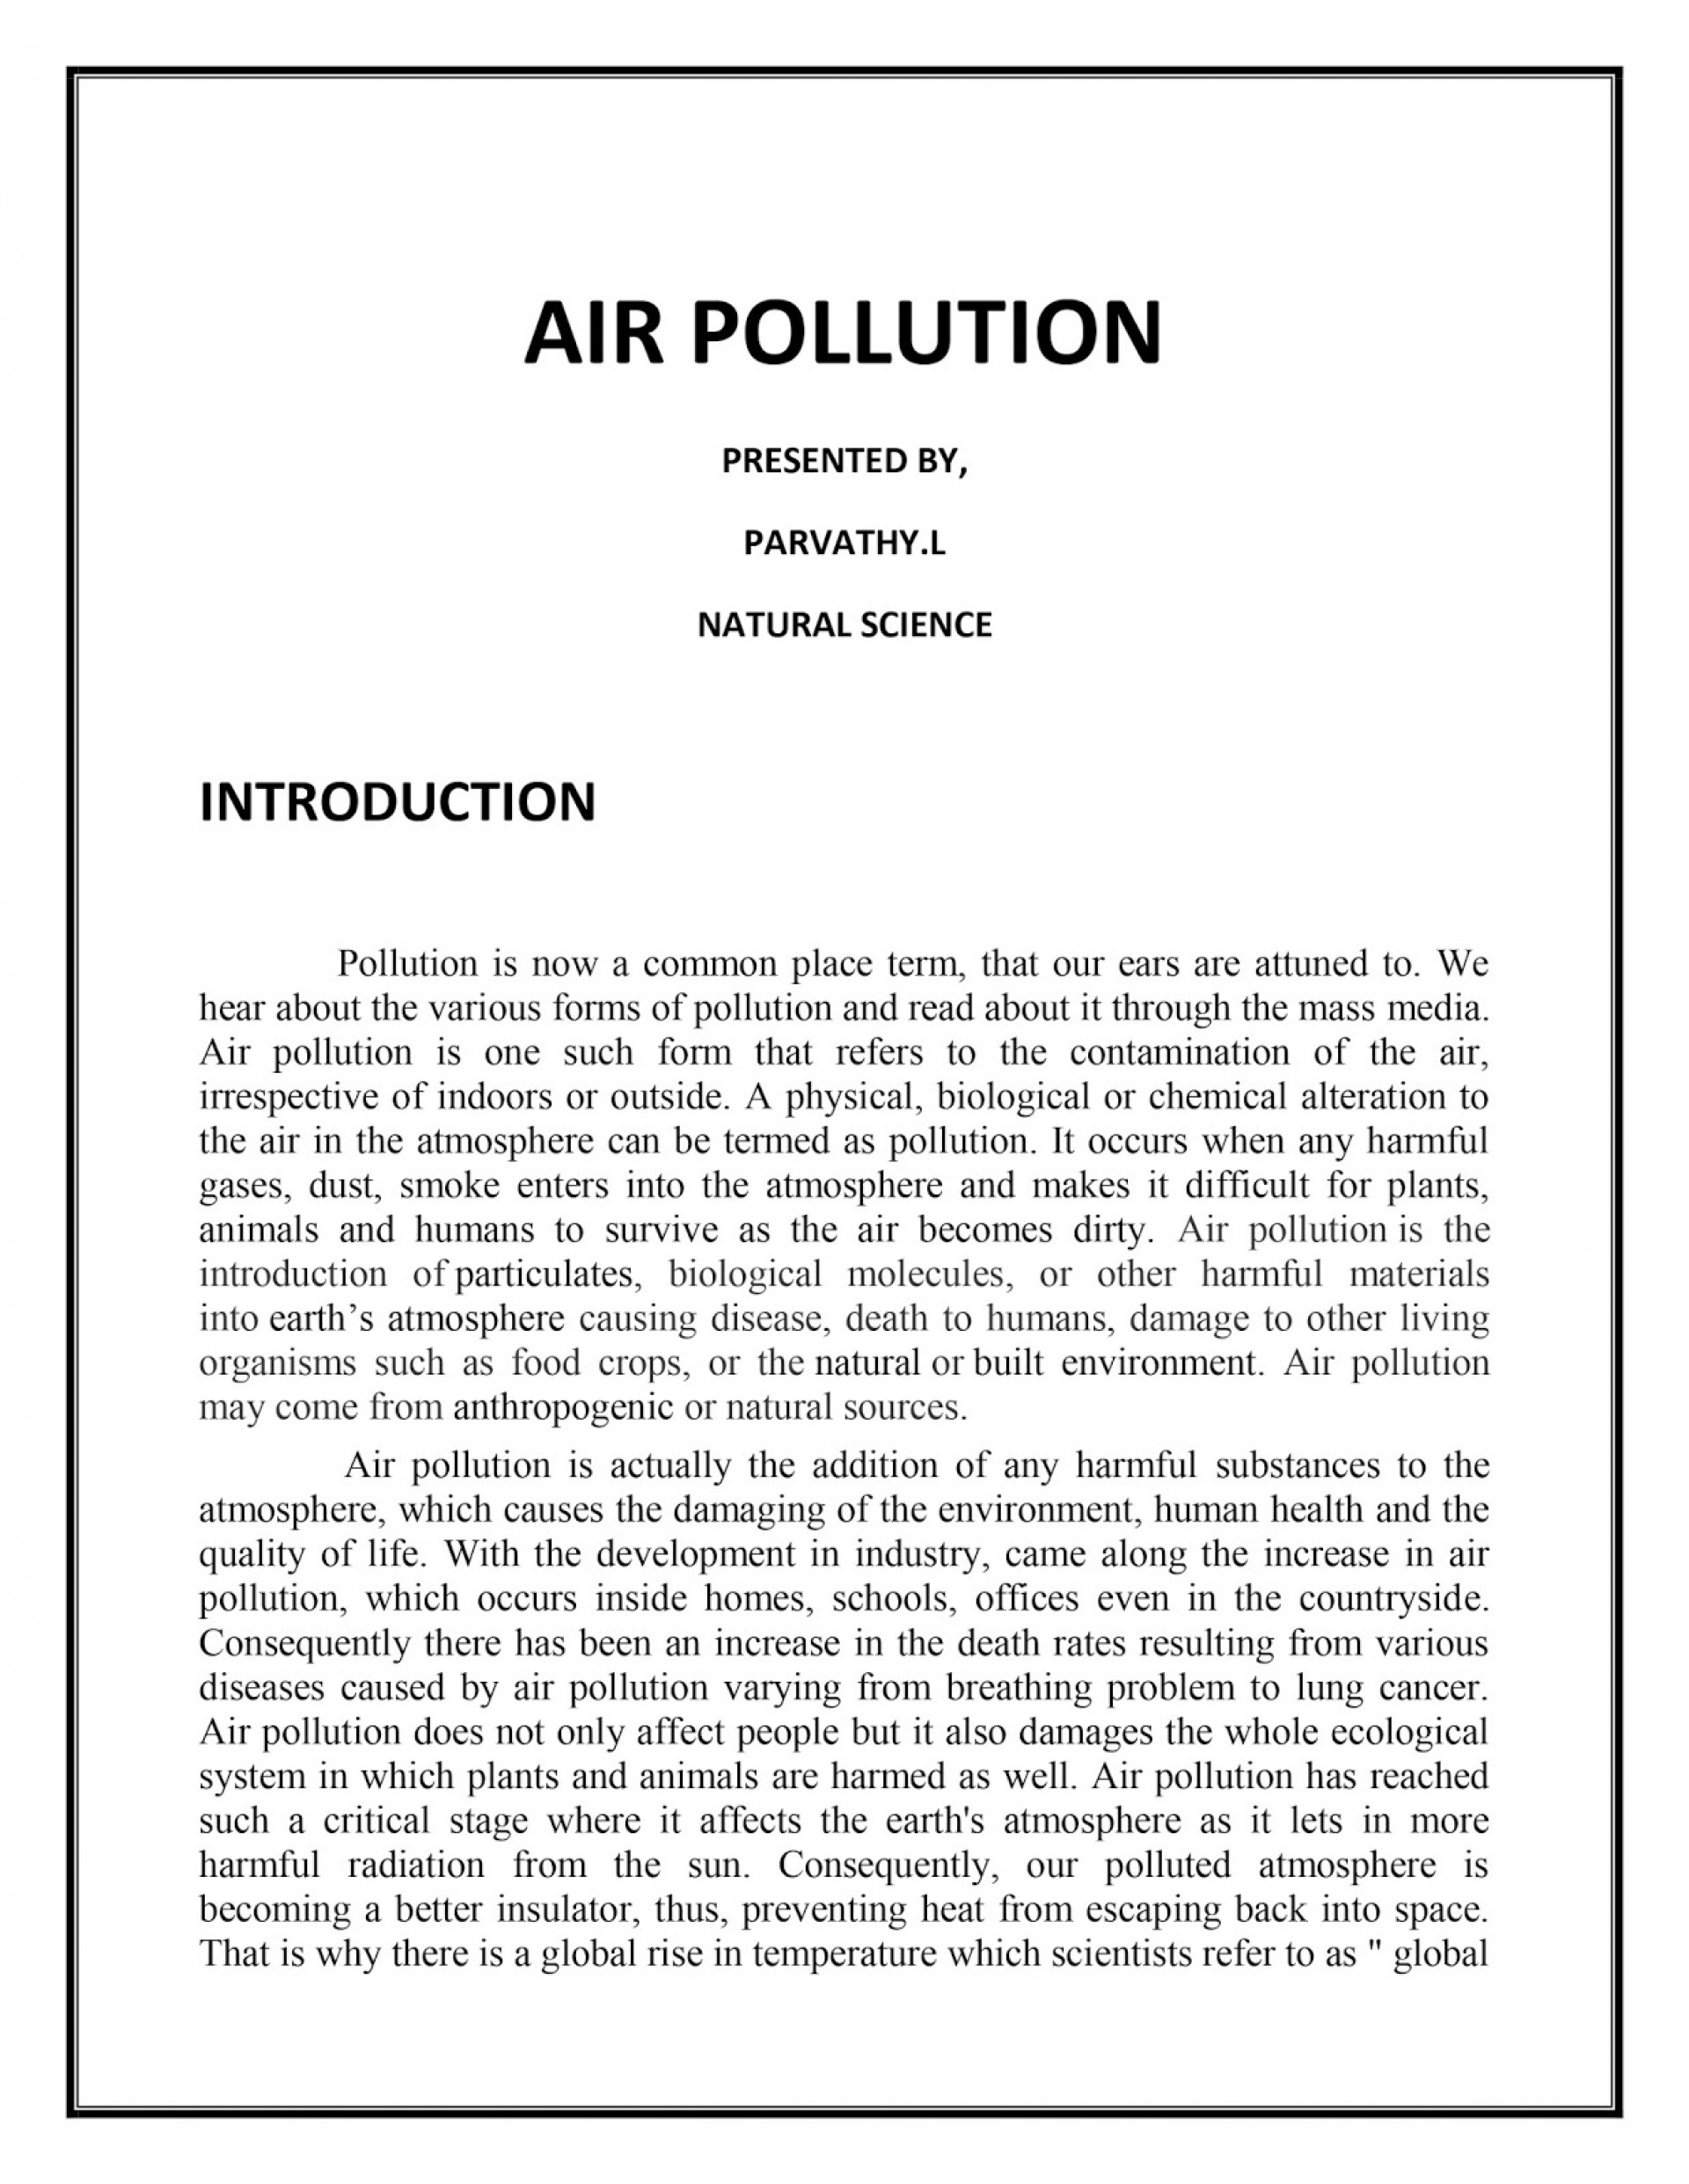 001 Airpollutiononlineassignment Essay Example Remarkable Pollution Thesis Statement Air In English 1000 Words 1920